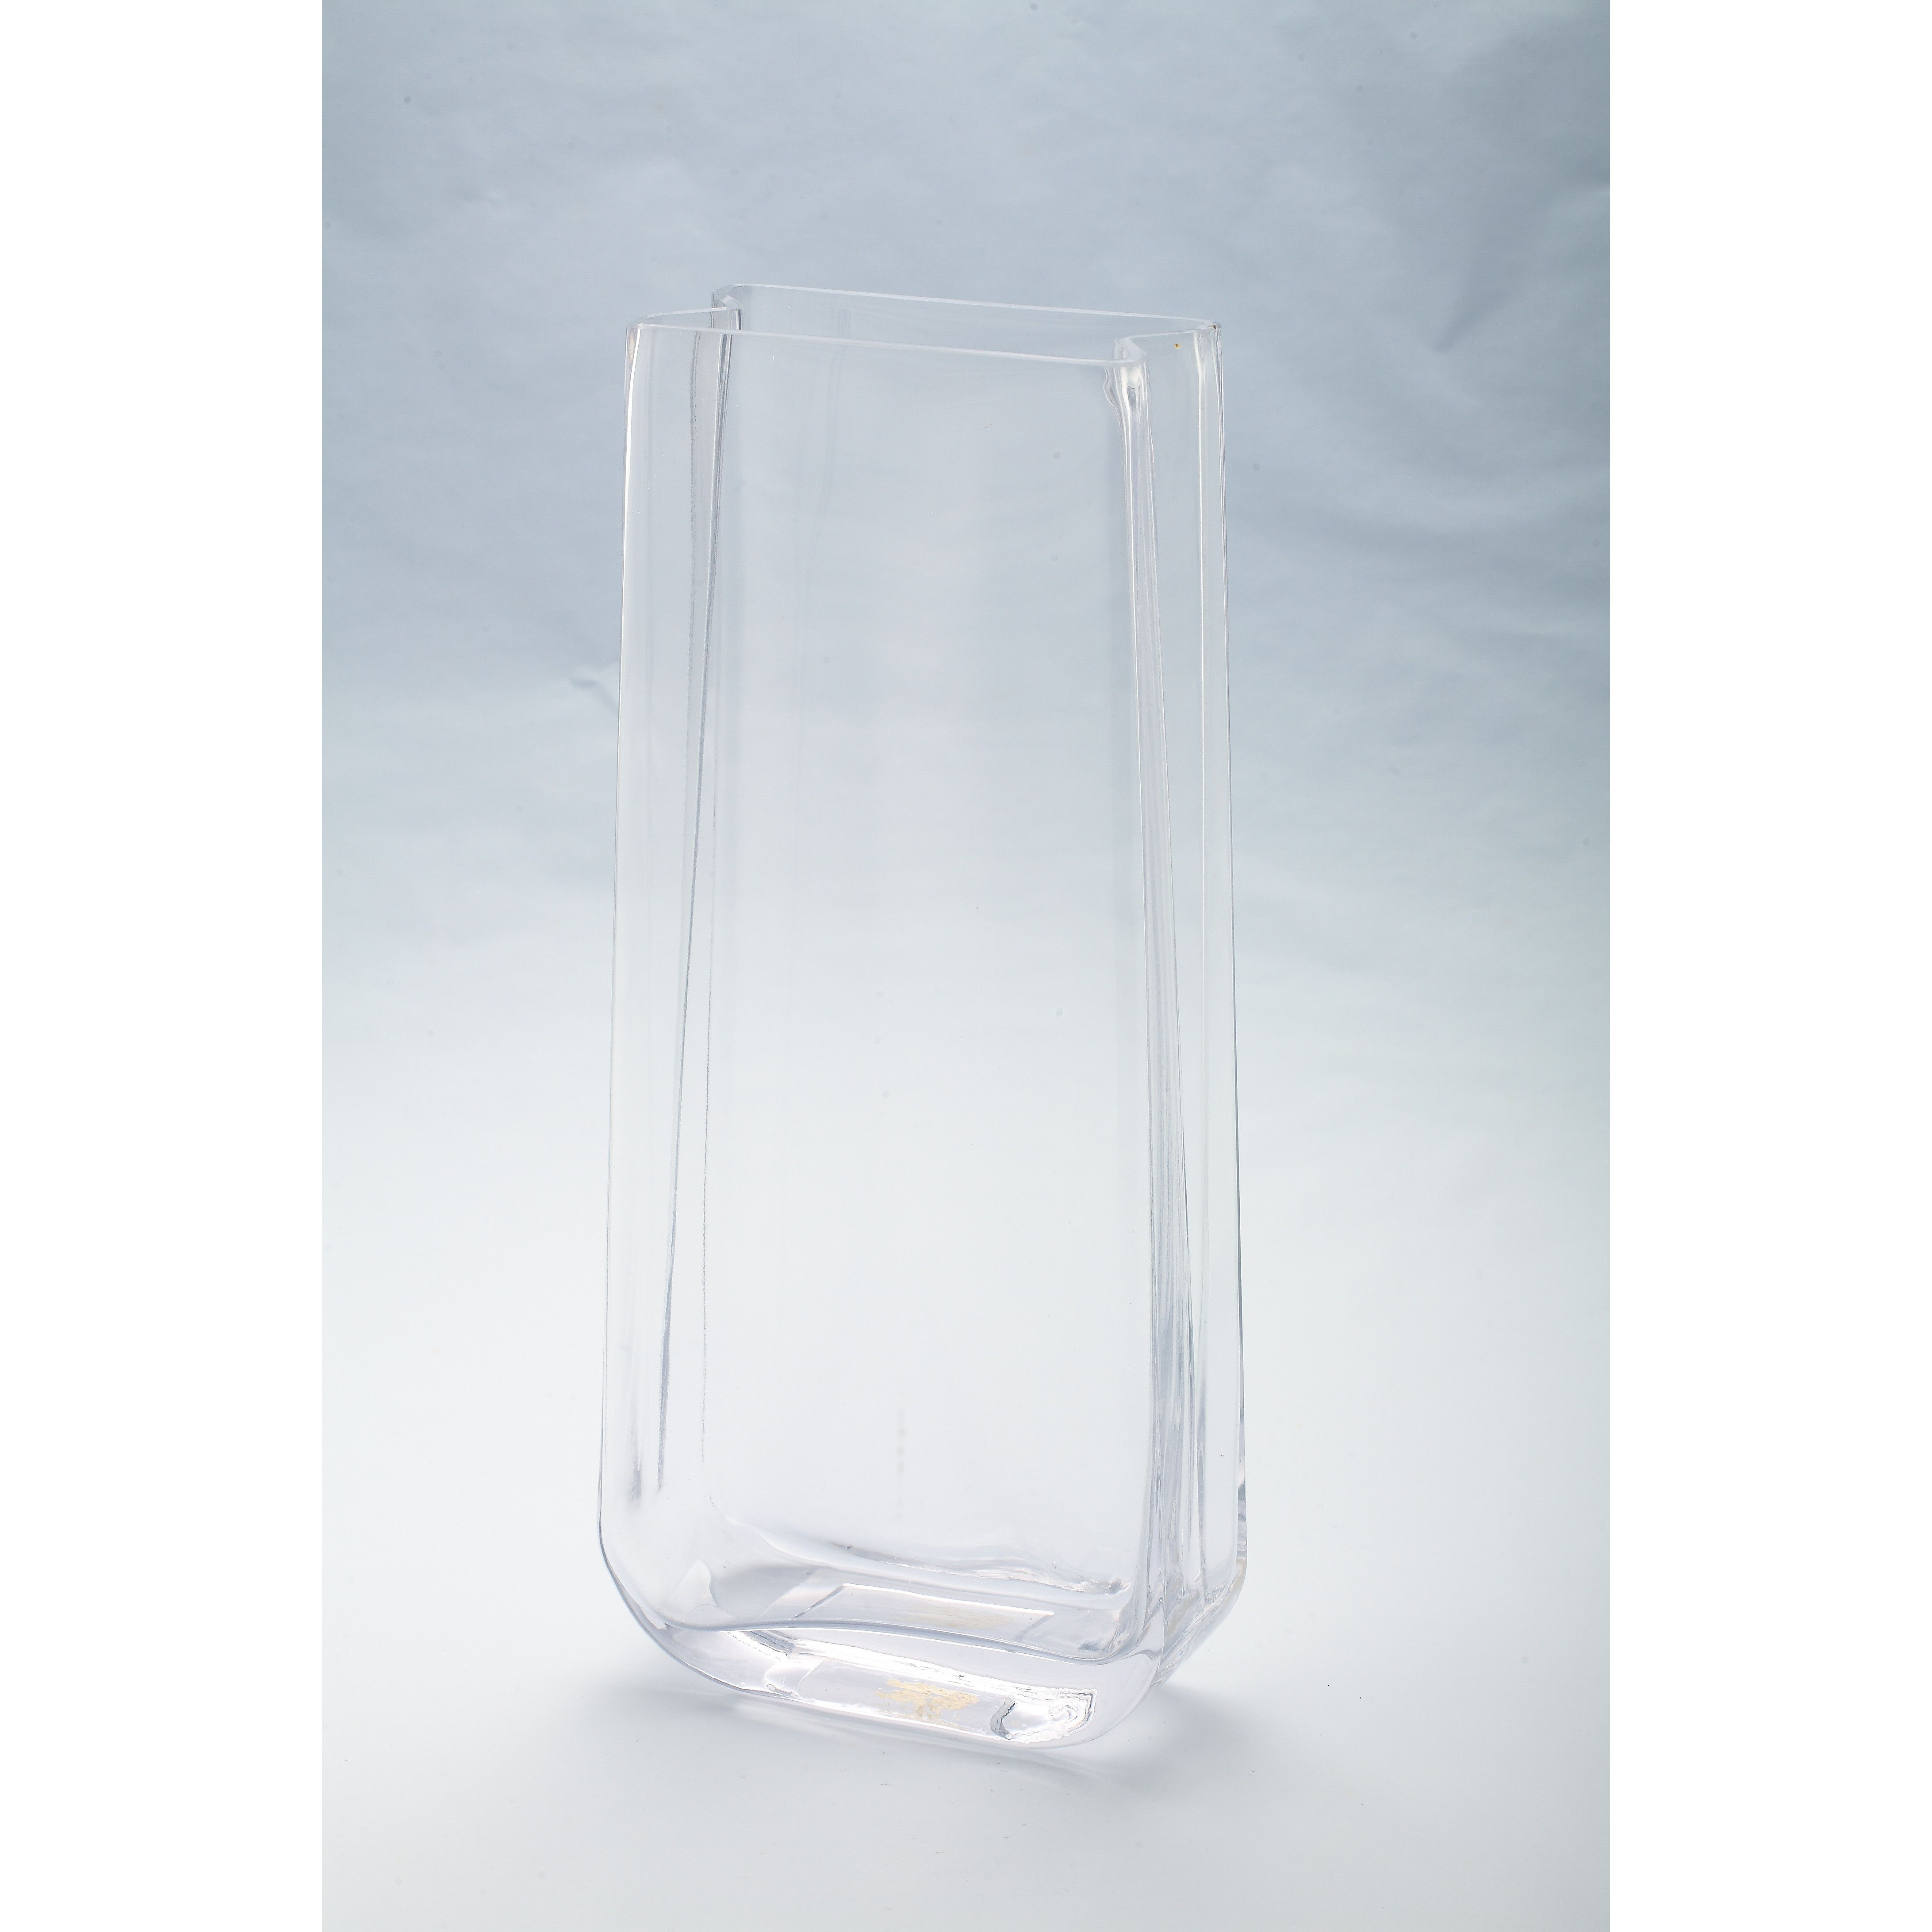 Clear Acrylic Vase Of Long Rectangular Glass Vase Collection Homeford Fbb00vasq555 Clear Inside Gallery Of Long Rectangular Glass Vase